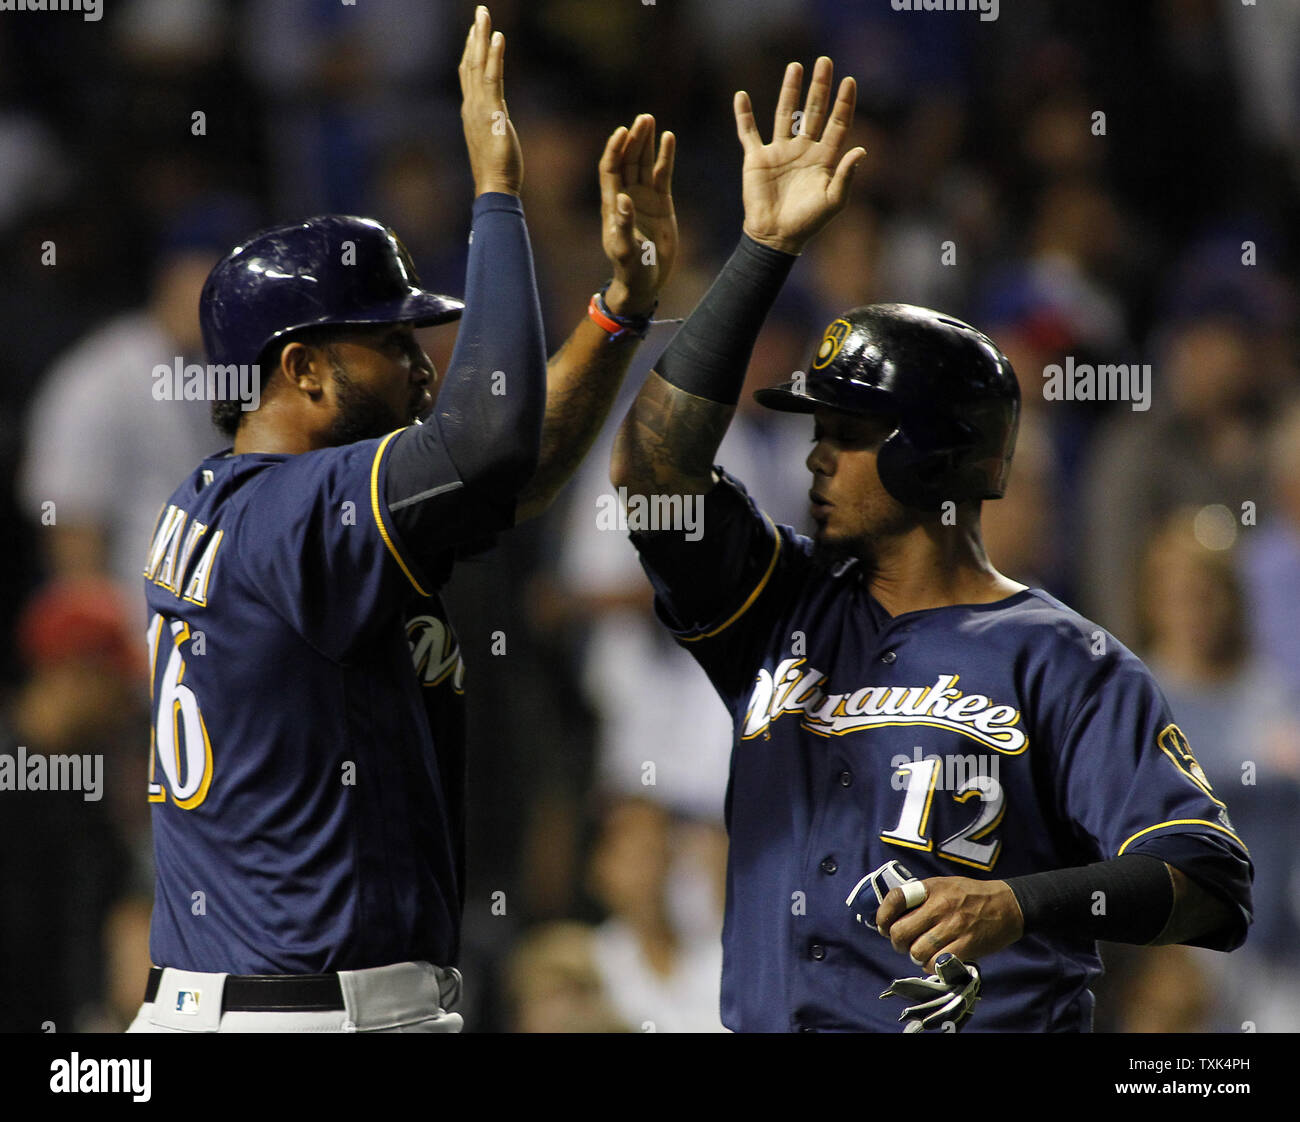 Milwaukee Brewers Domingo Santiago (L) and Martin Maldonado celebrate scoring in the eight inning of their game against the Chicago Cubs on September 15, 2016 in Chicago. The Brewers defeated the Cubs 5-4. Photo by Frank Polich/UPI - Stock Image